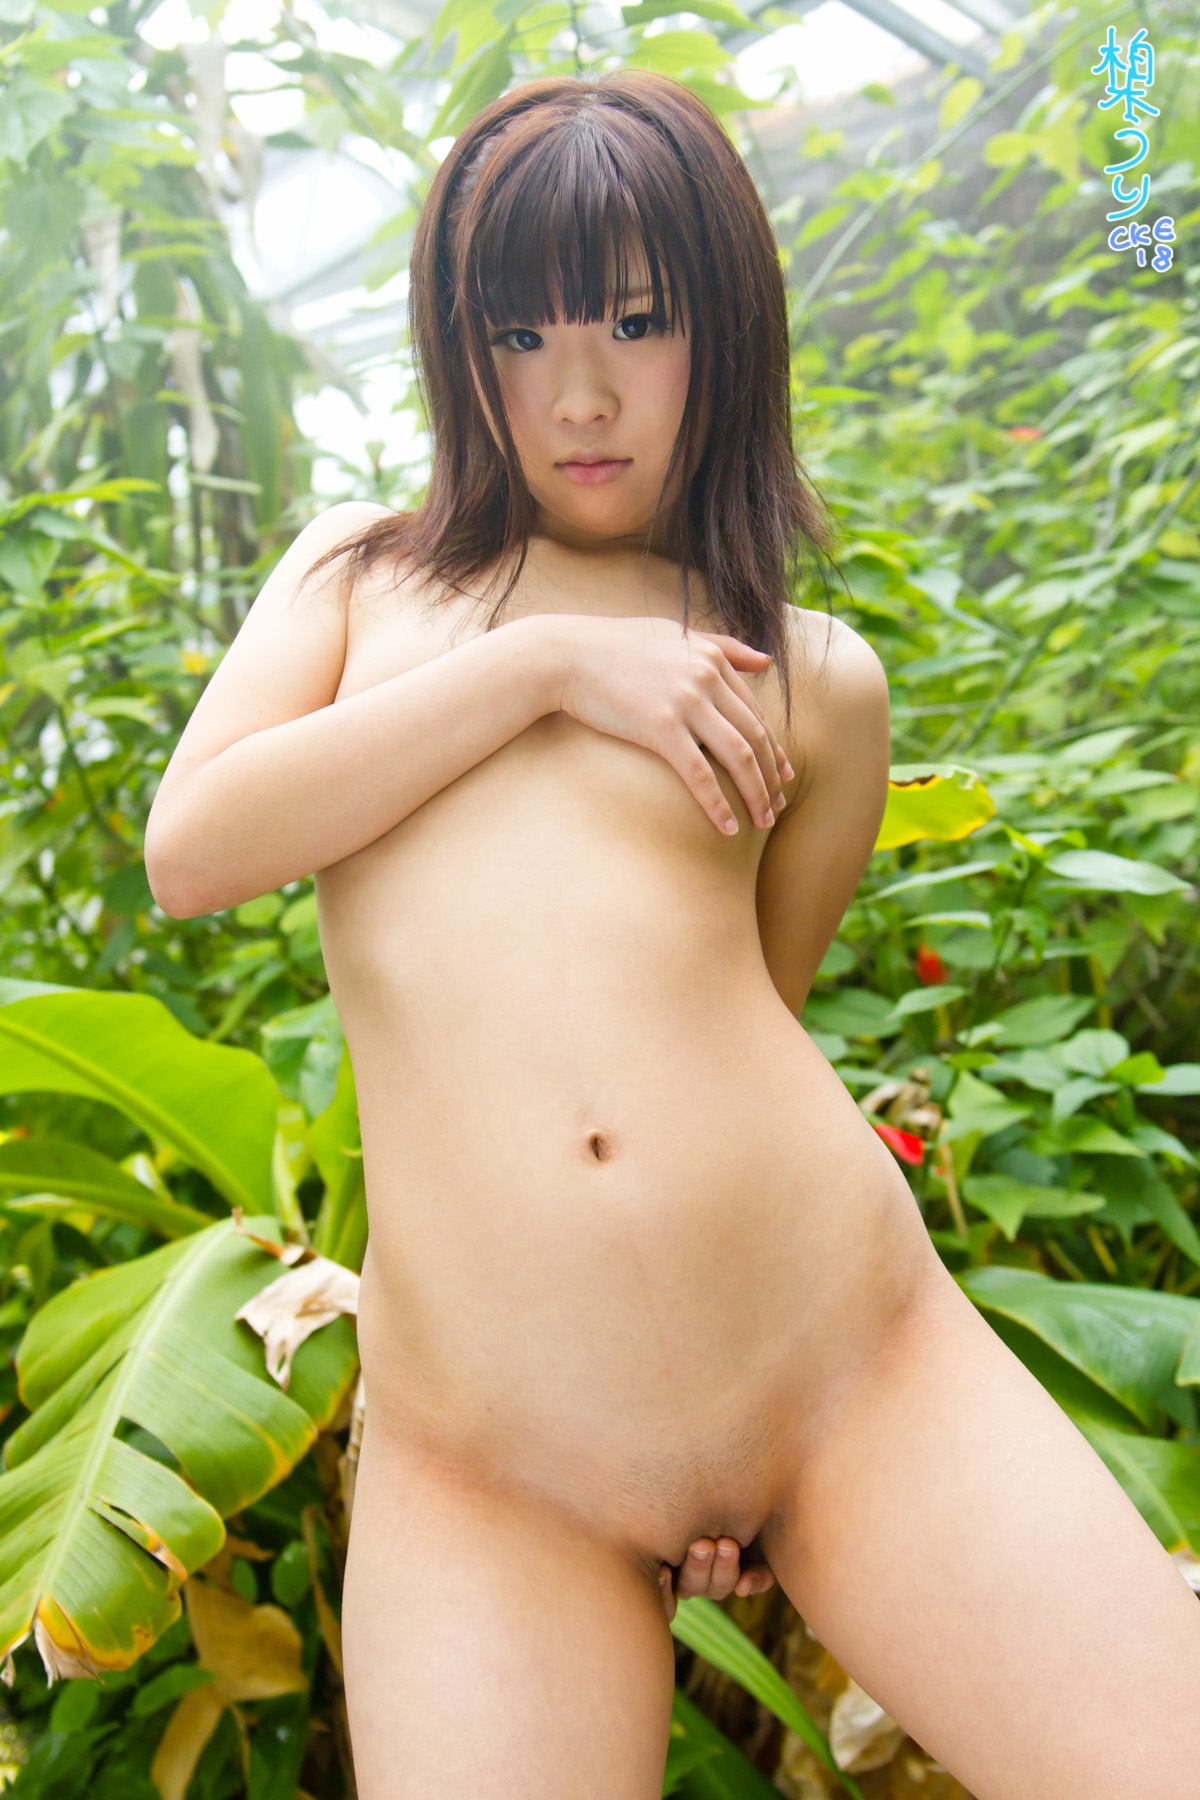 Asian junior girls nudes